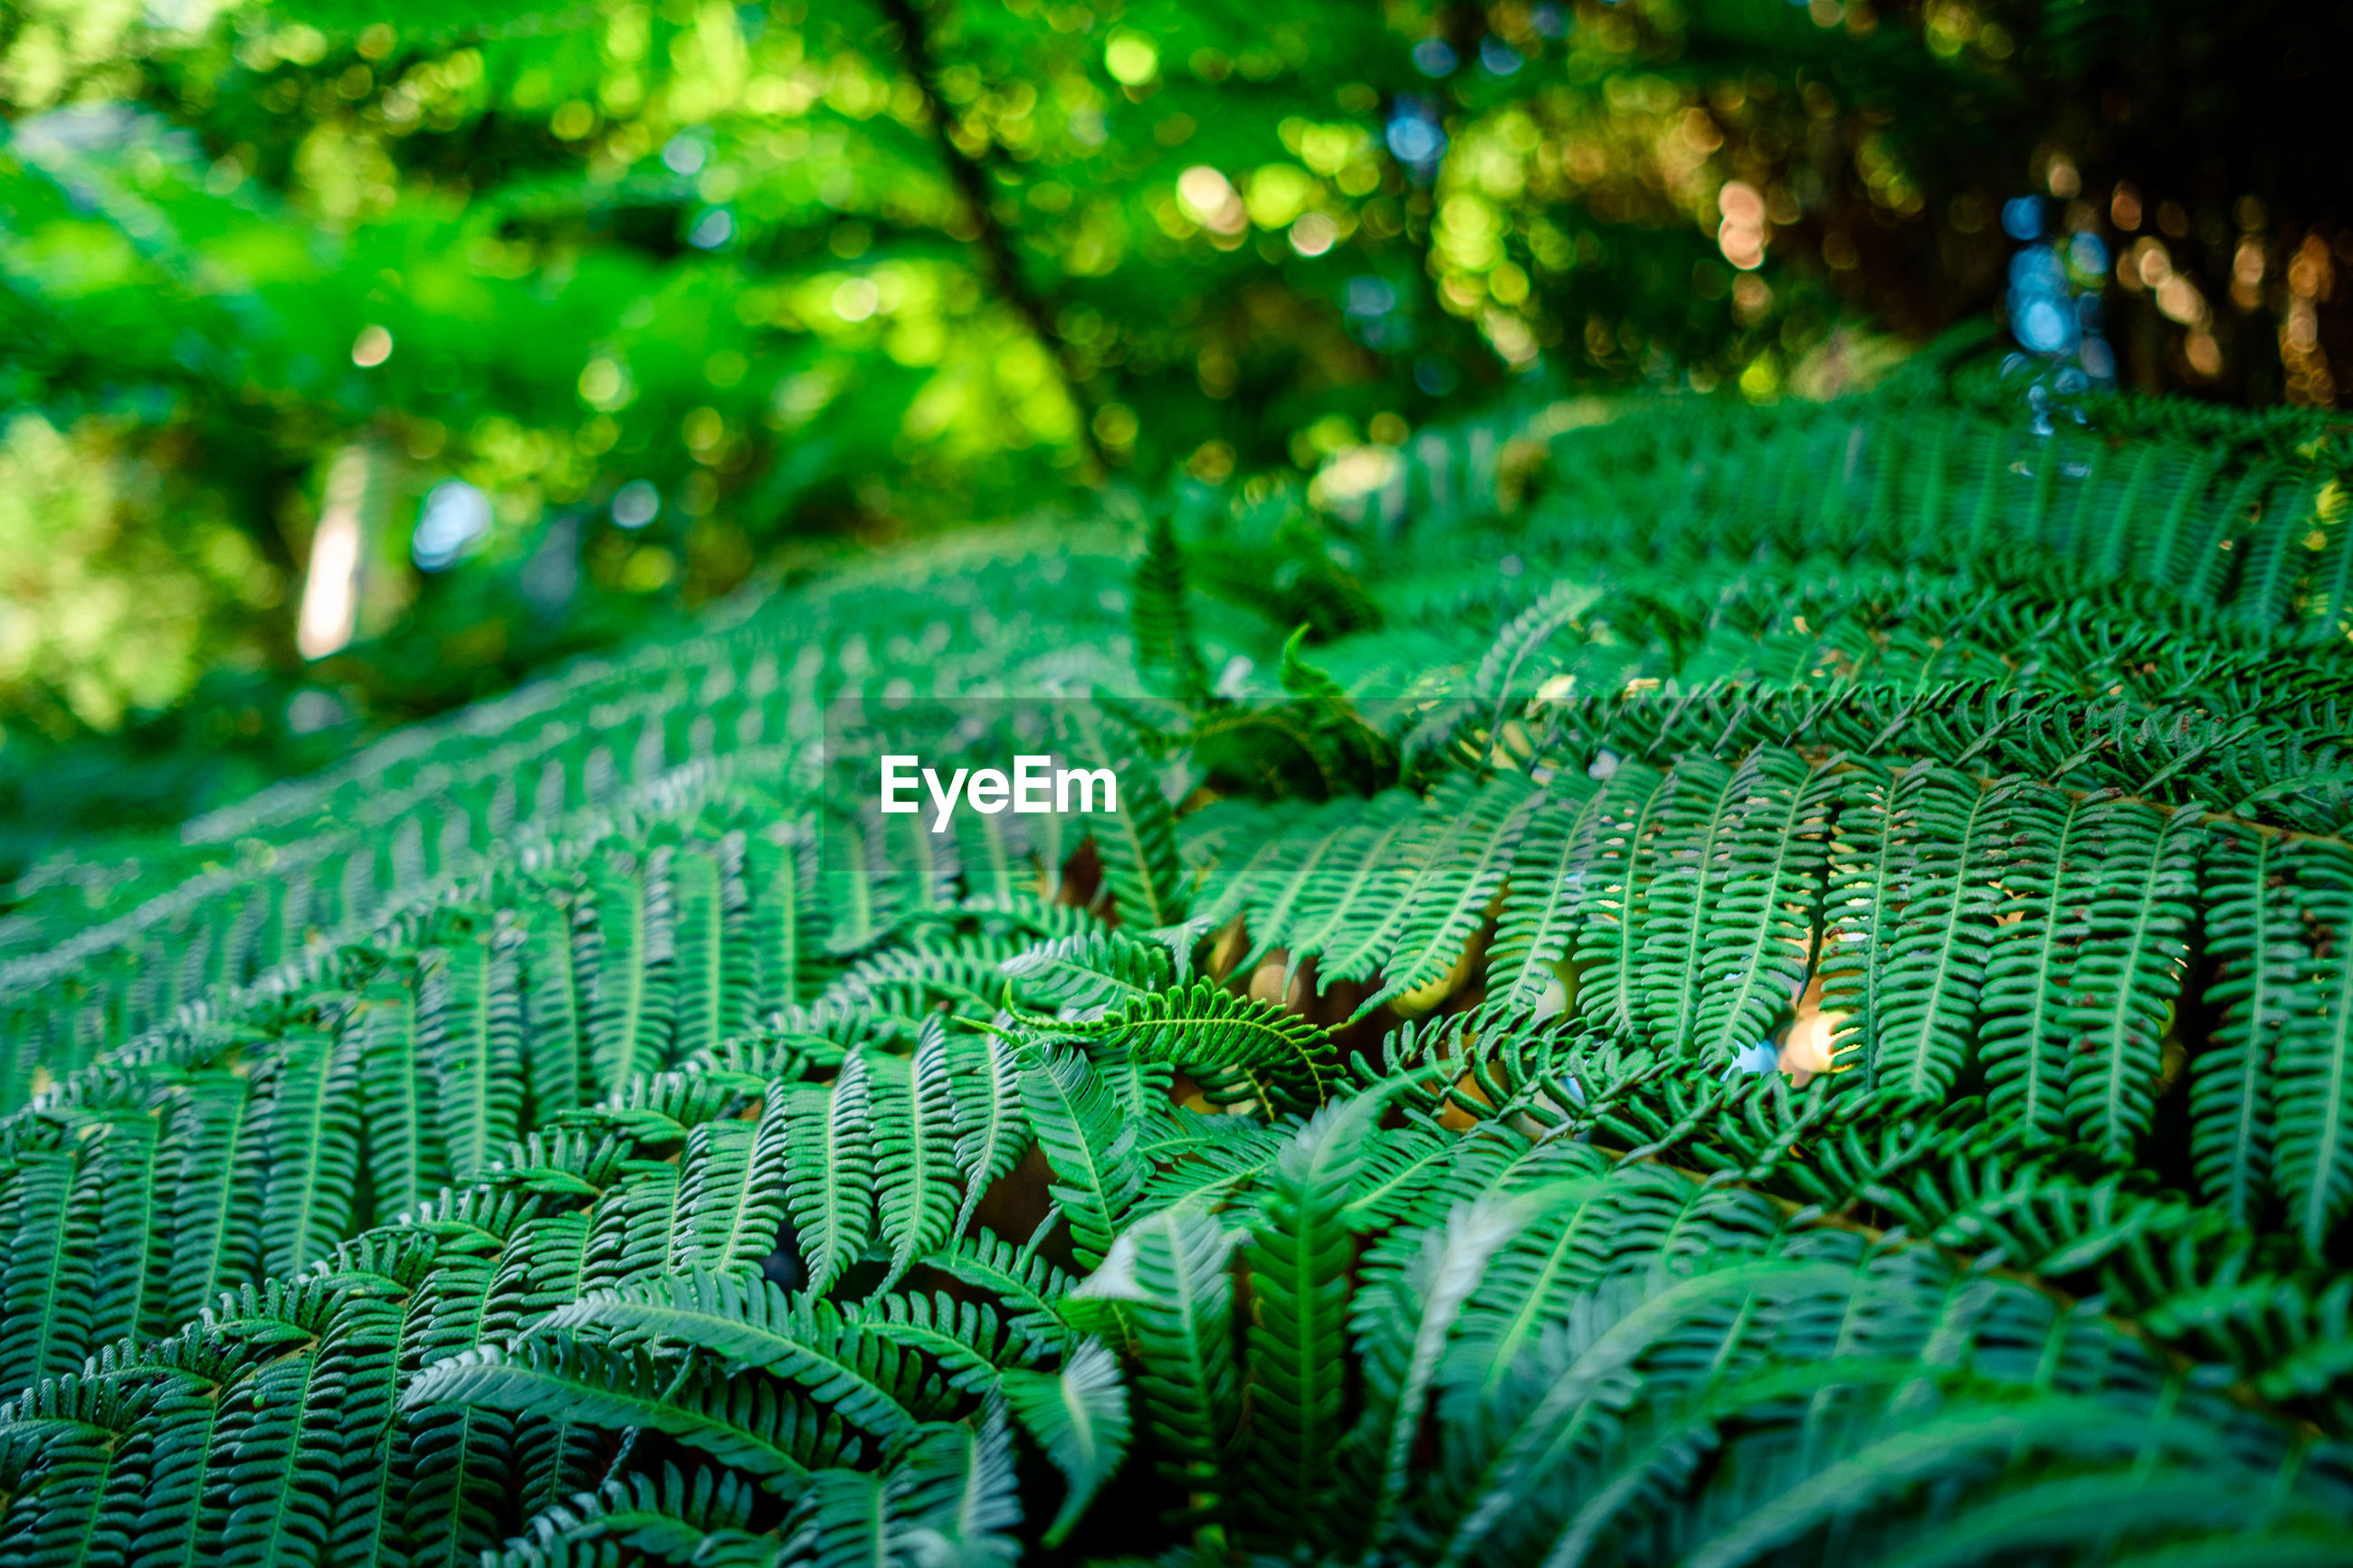 CLOSE-UP OF FERN AMIDST PLANTS IN FOREST